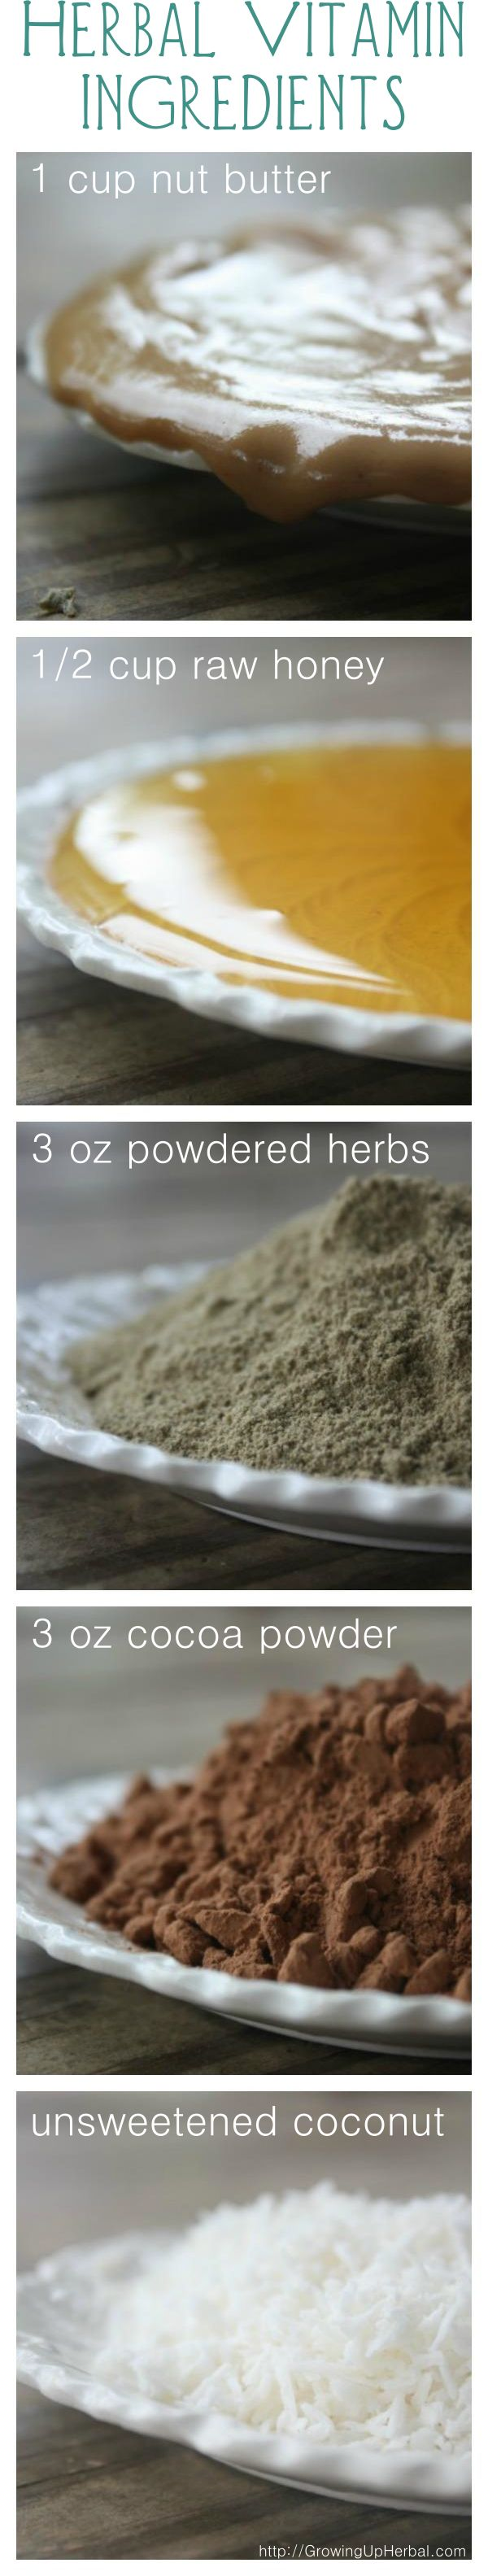 Chinese health herbal medicine supplement - 261 Best Sports Images On Pinterest Herbal Remedies Healing Herbs And Health